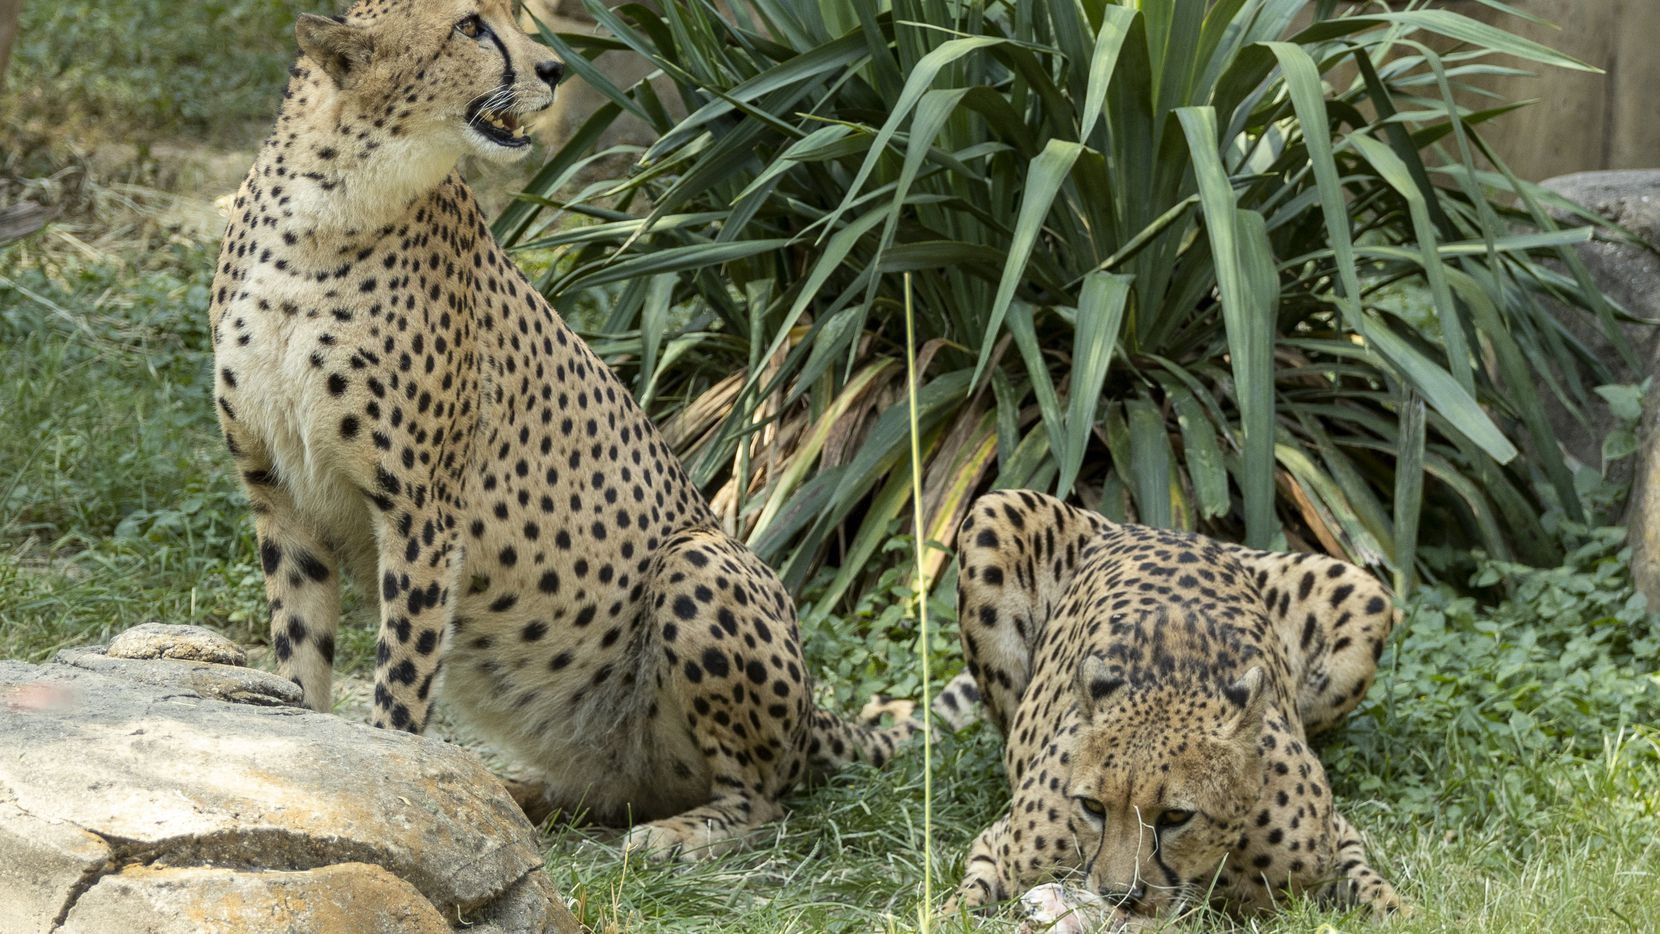 8-year-old cheetahs Finnick and Brutus snack on bones in the Wilds of Africa habitat at the Dallas Zoo on Wednesday, July 28, 2021. The zoo received the two brothers from The Wilds in Columbus, Ohio.